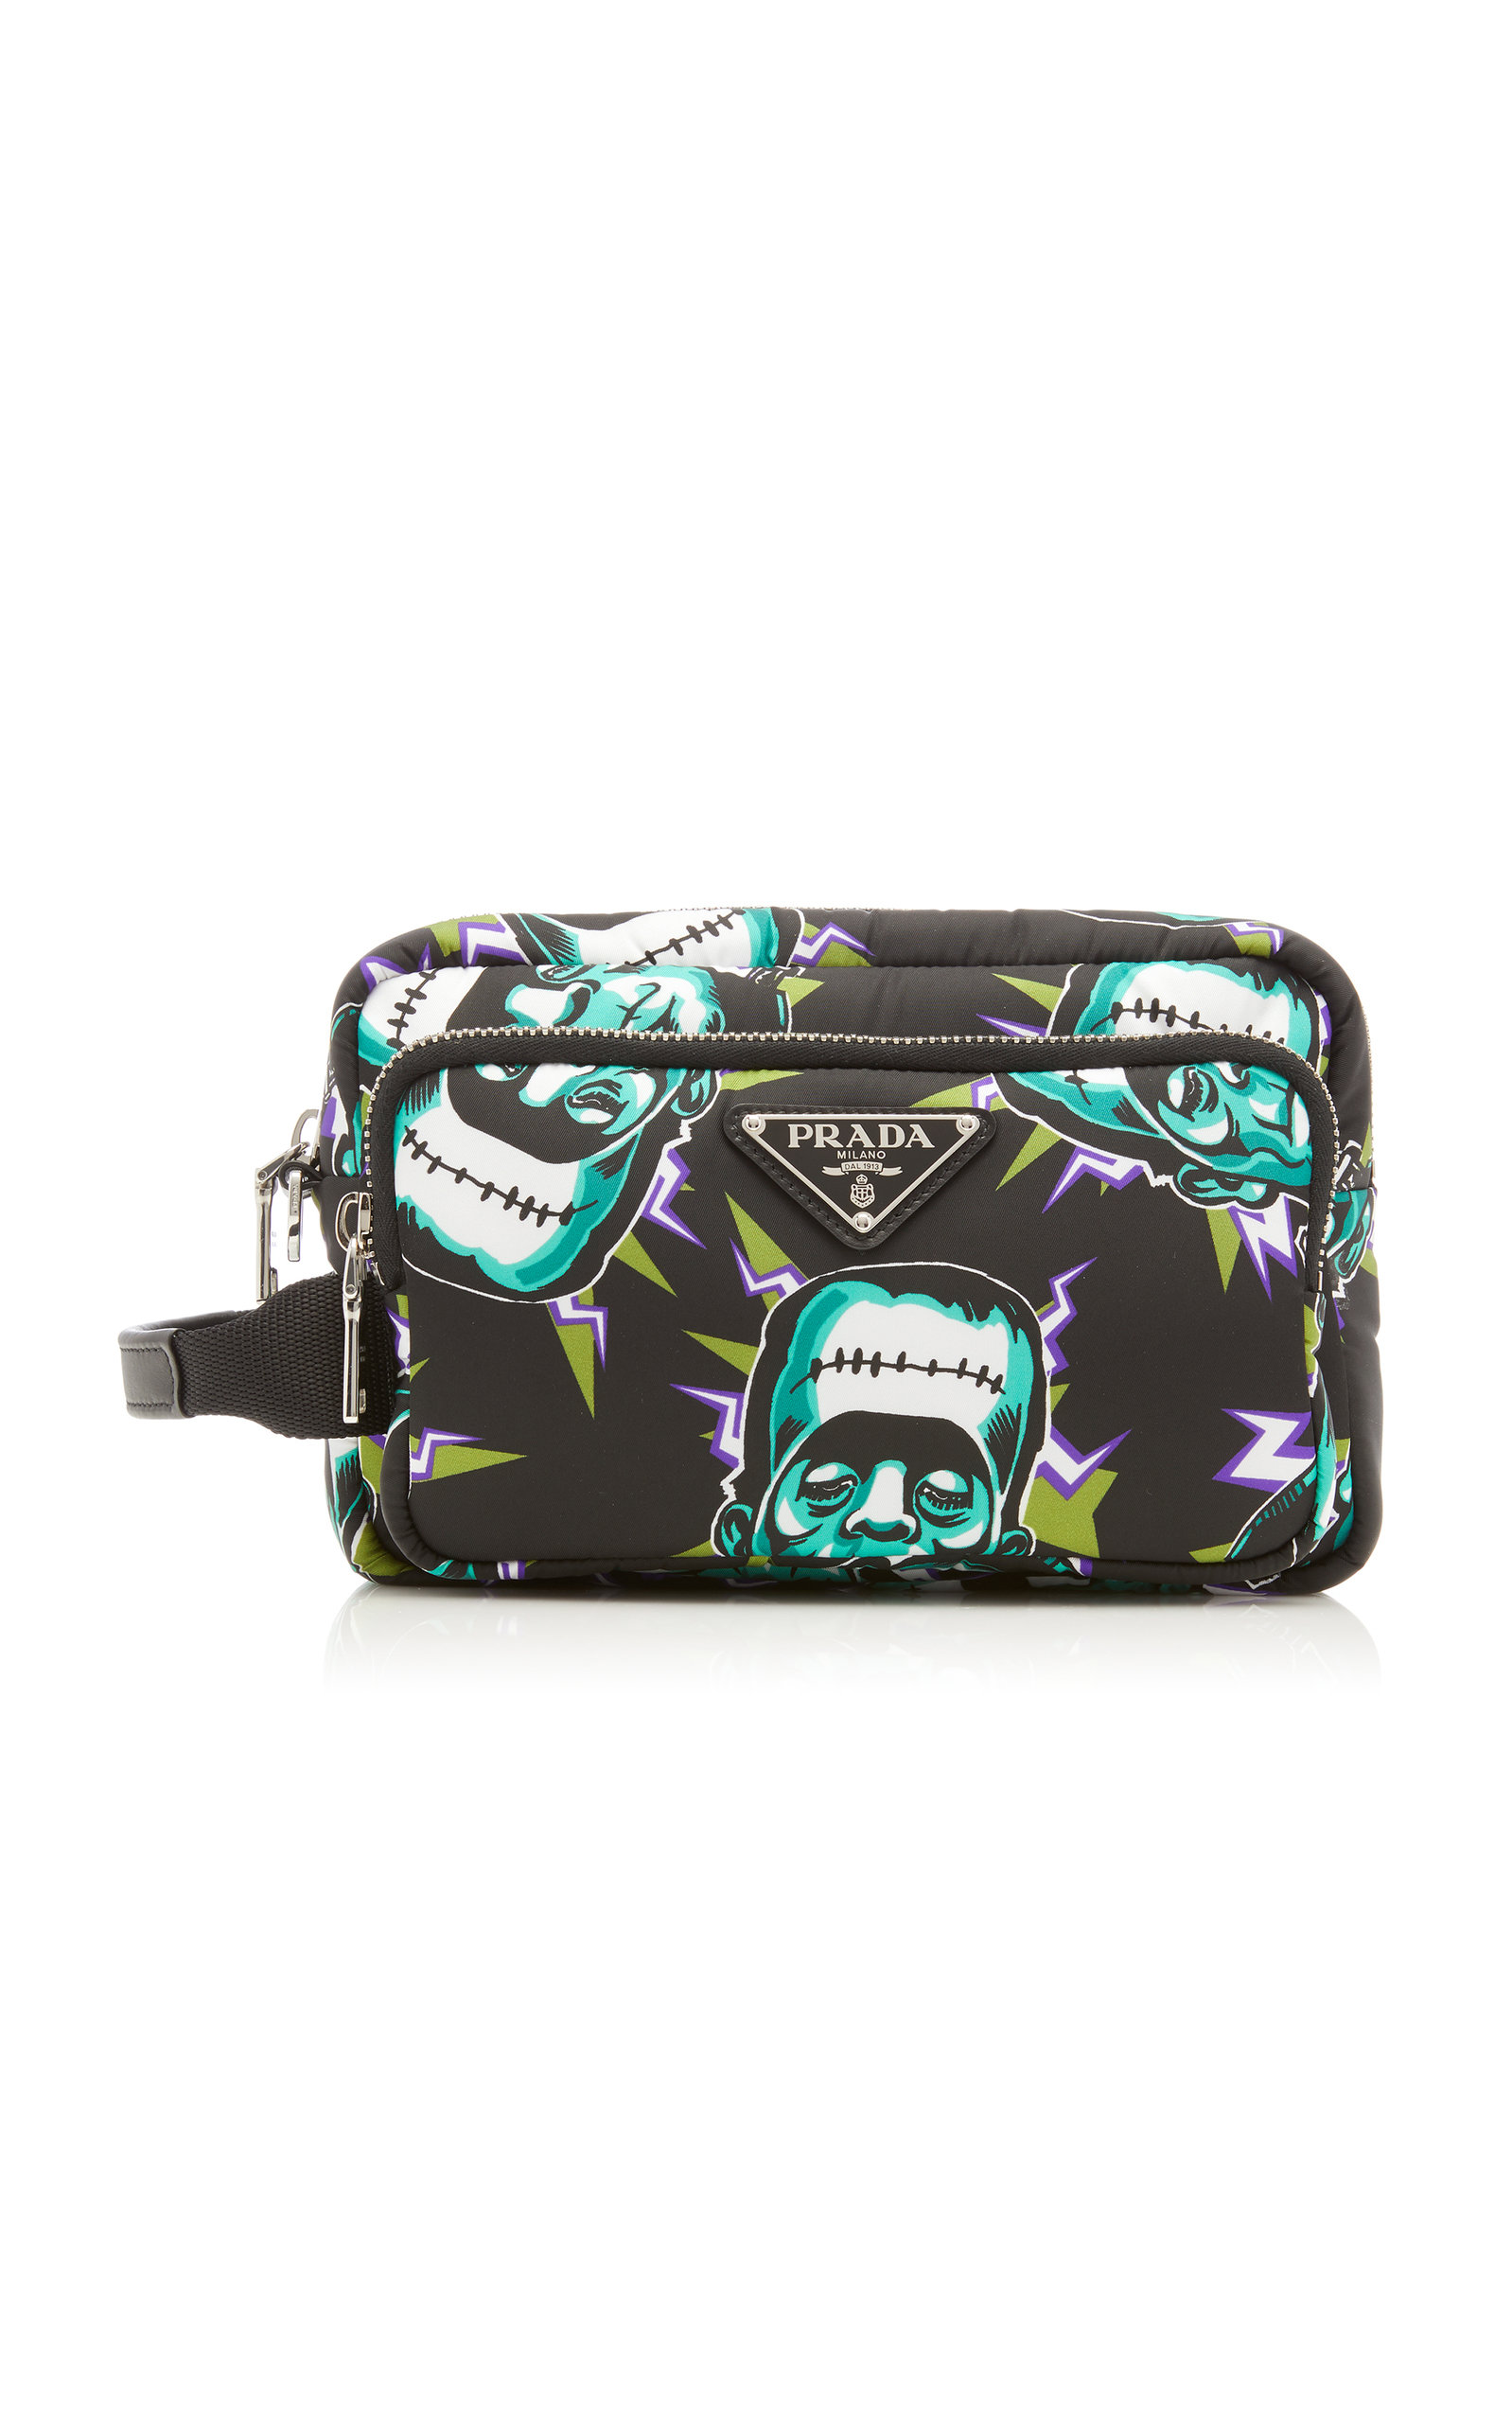 Prada Travel Frankenstein Print Large Pouch